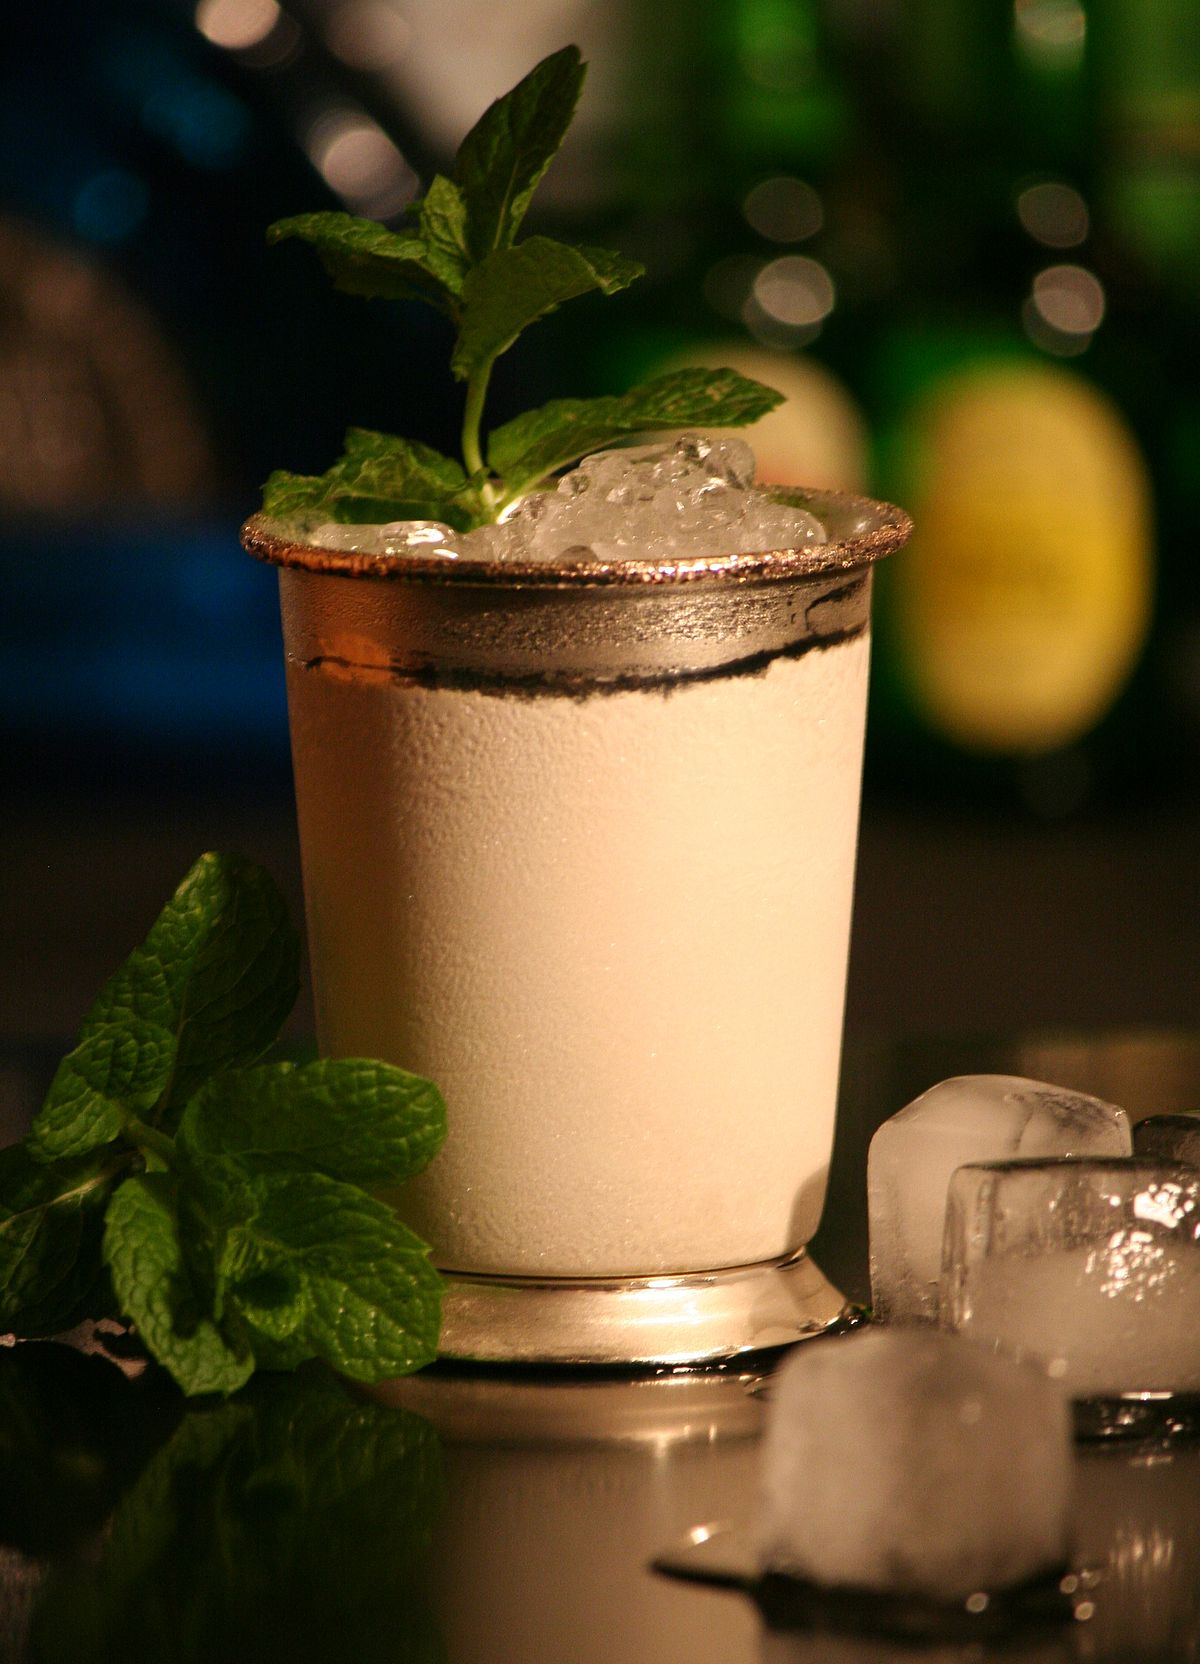 The Mint Julep. Image credit: Wikipedia